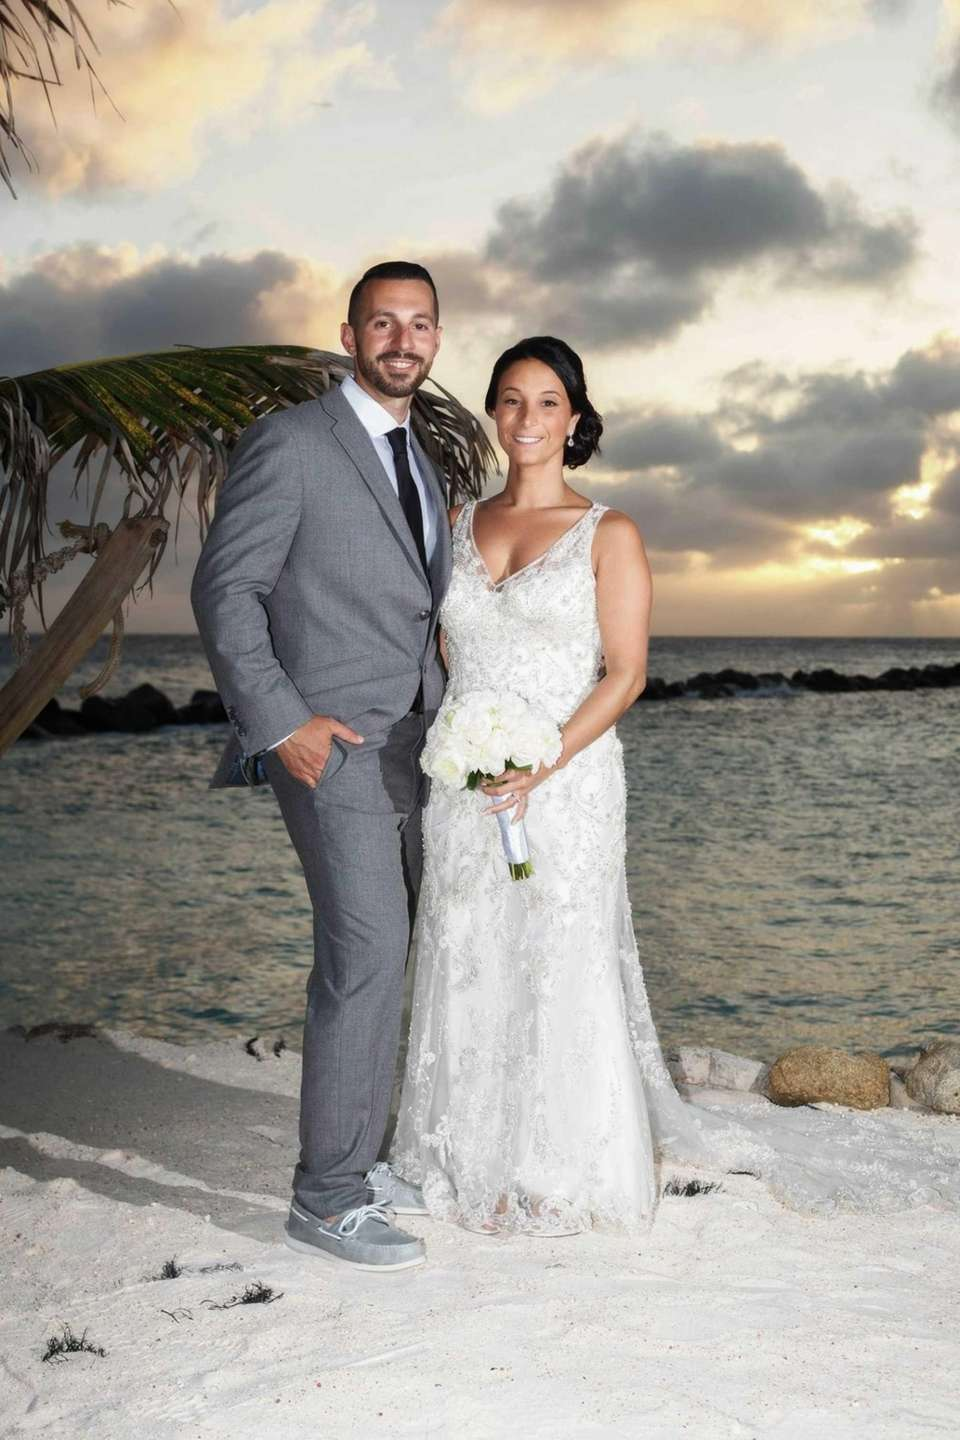 Ray and Christine Sanicola were married on the